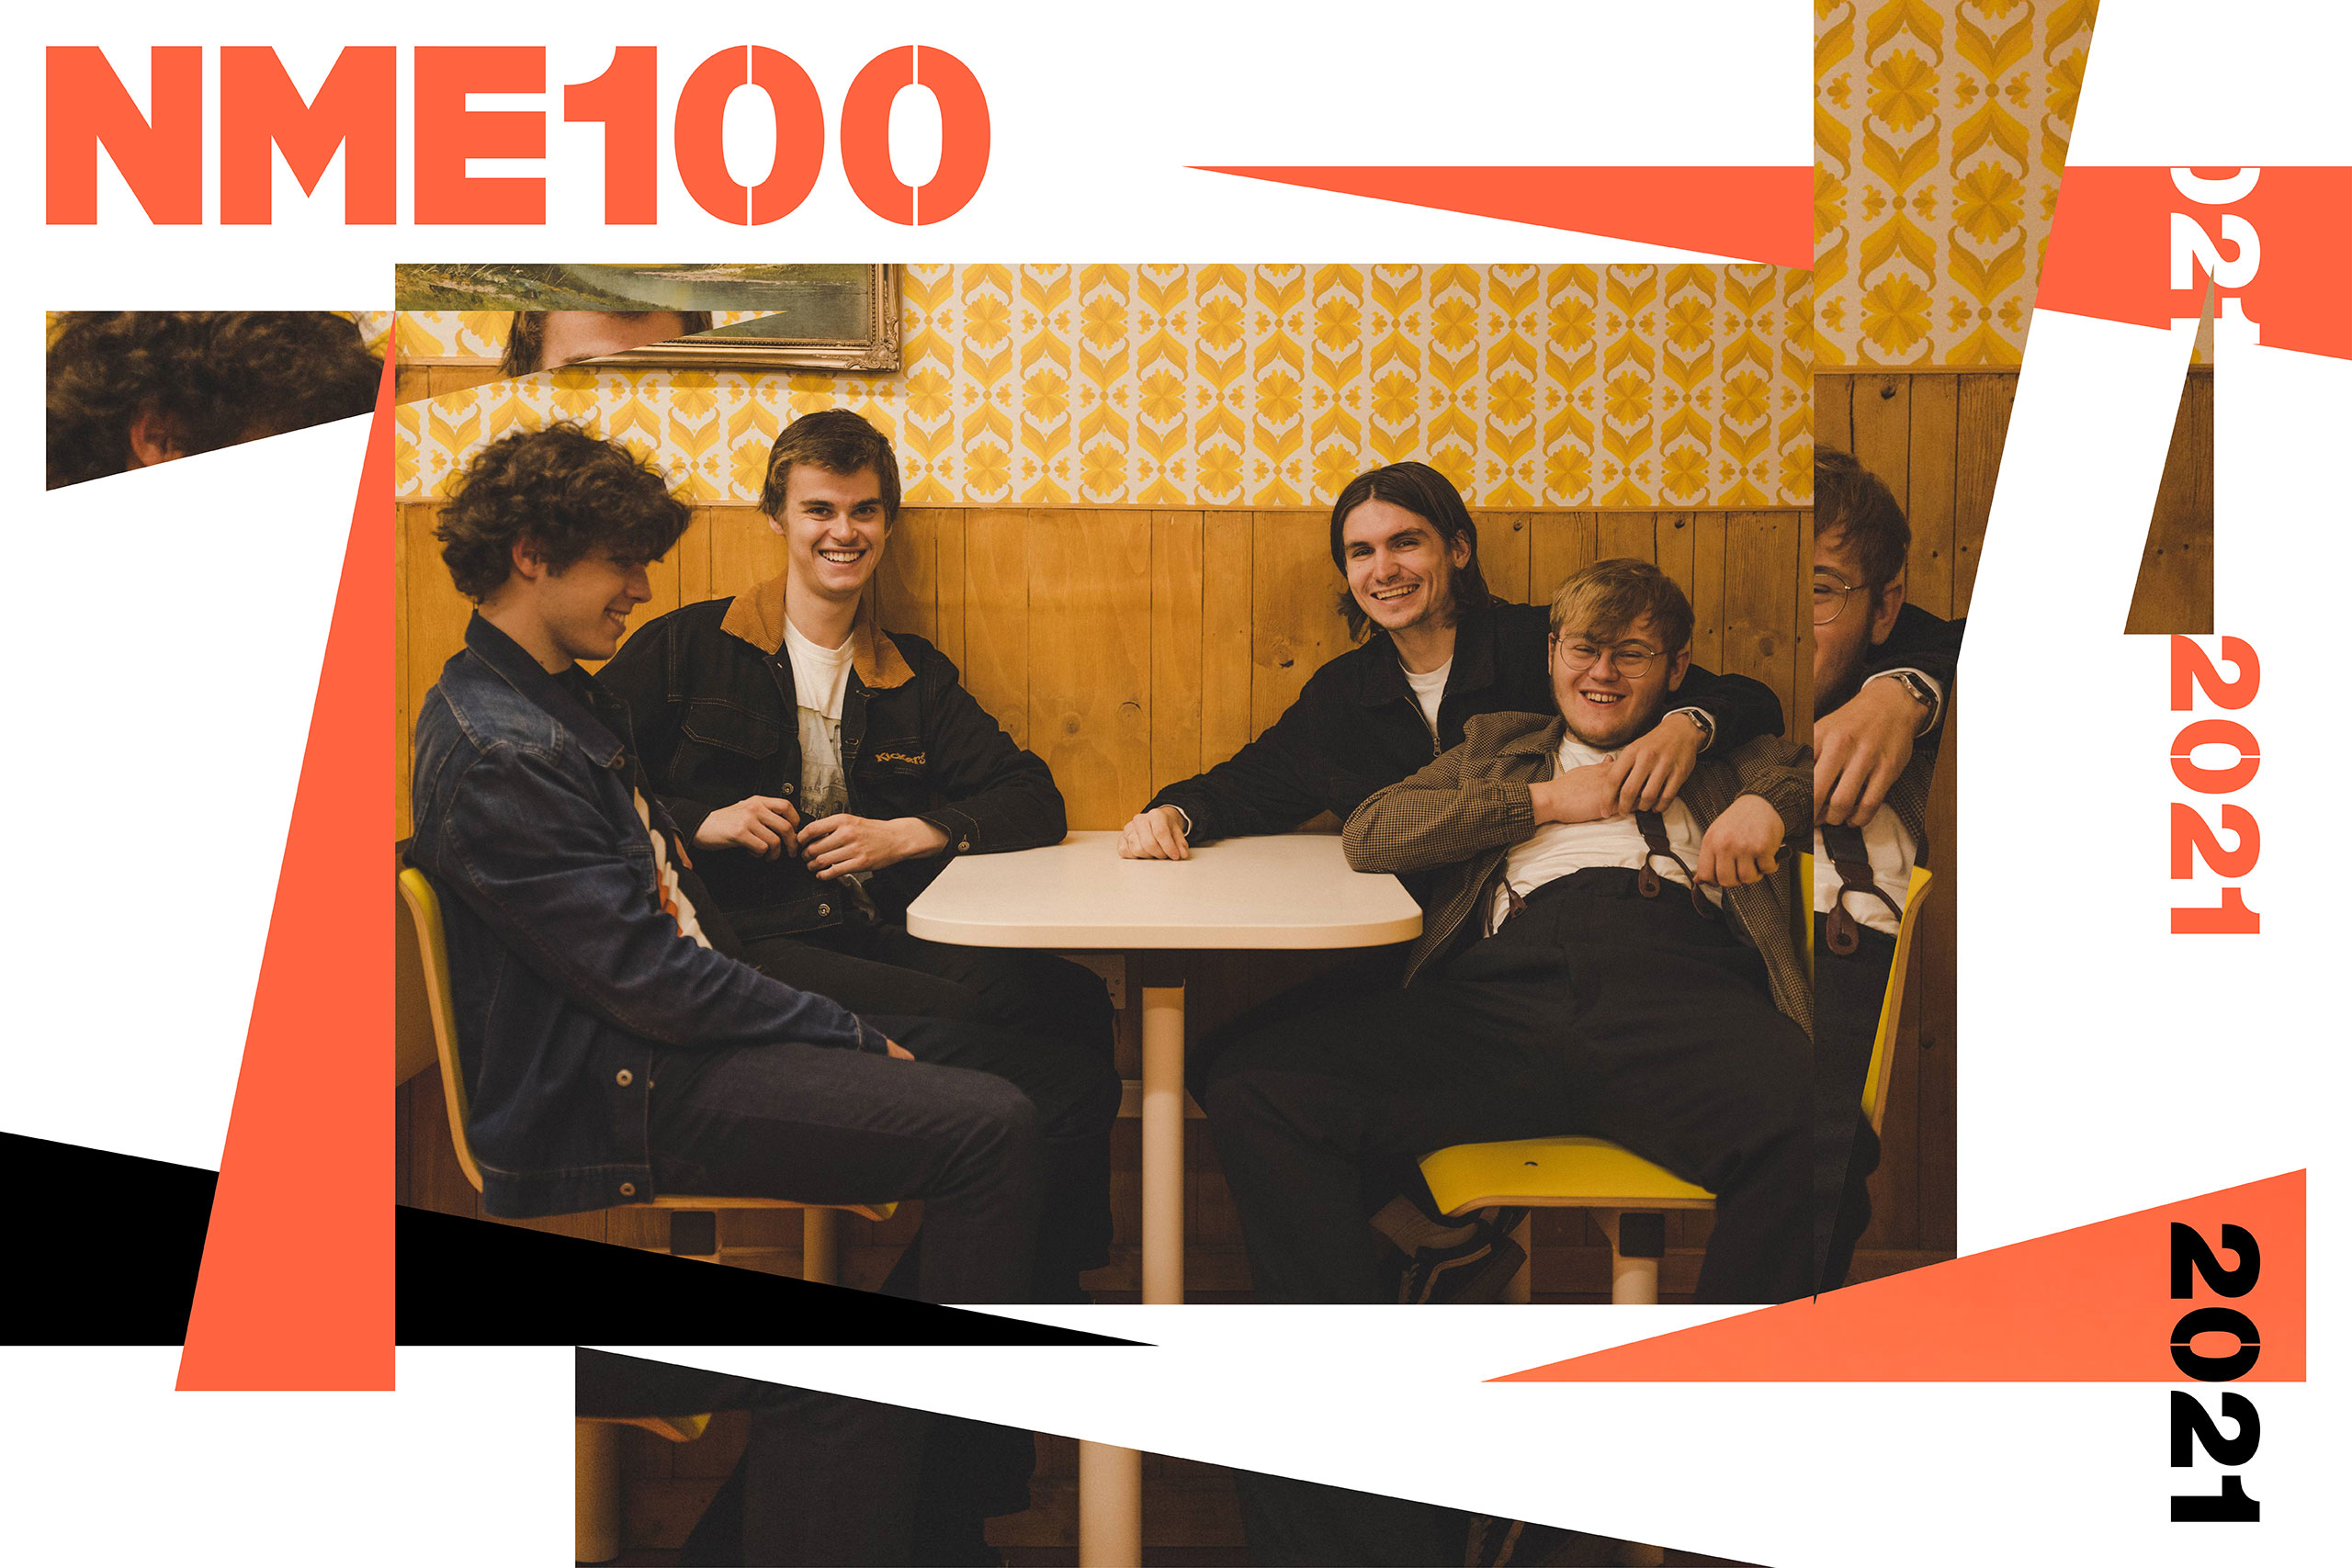 NME 100 the lathums